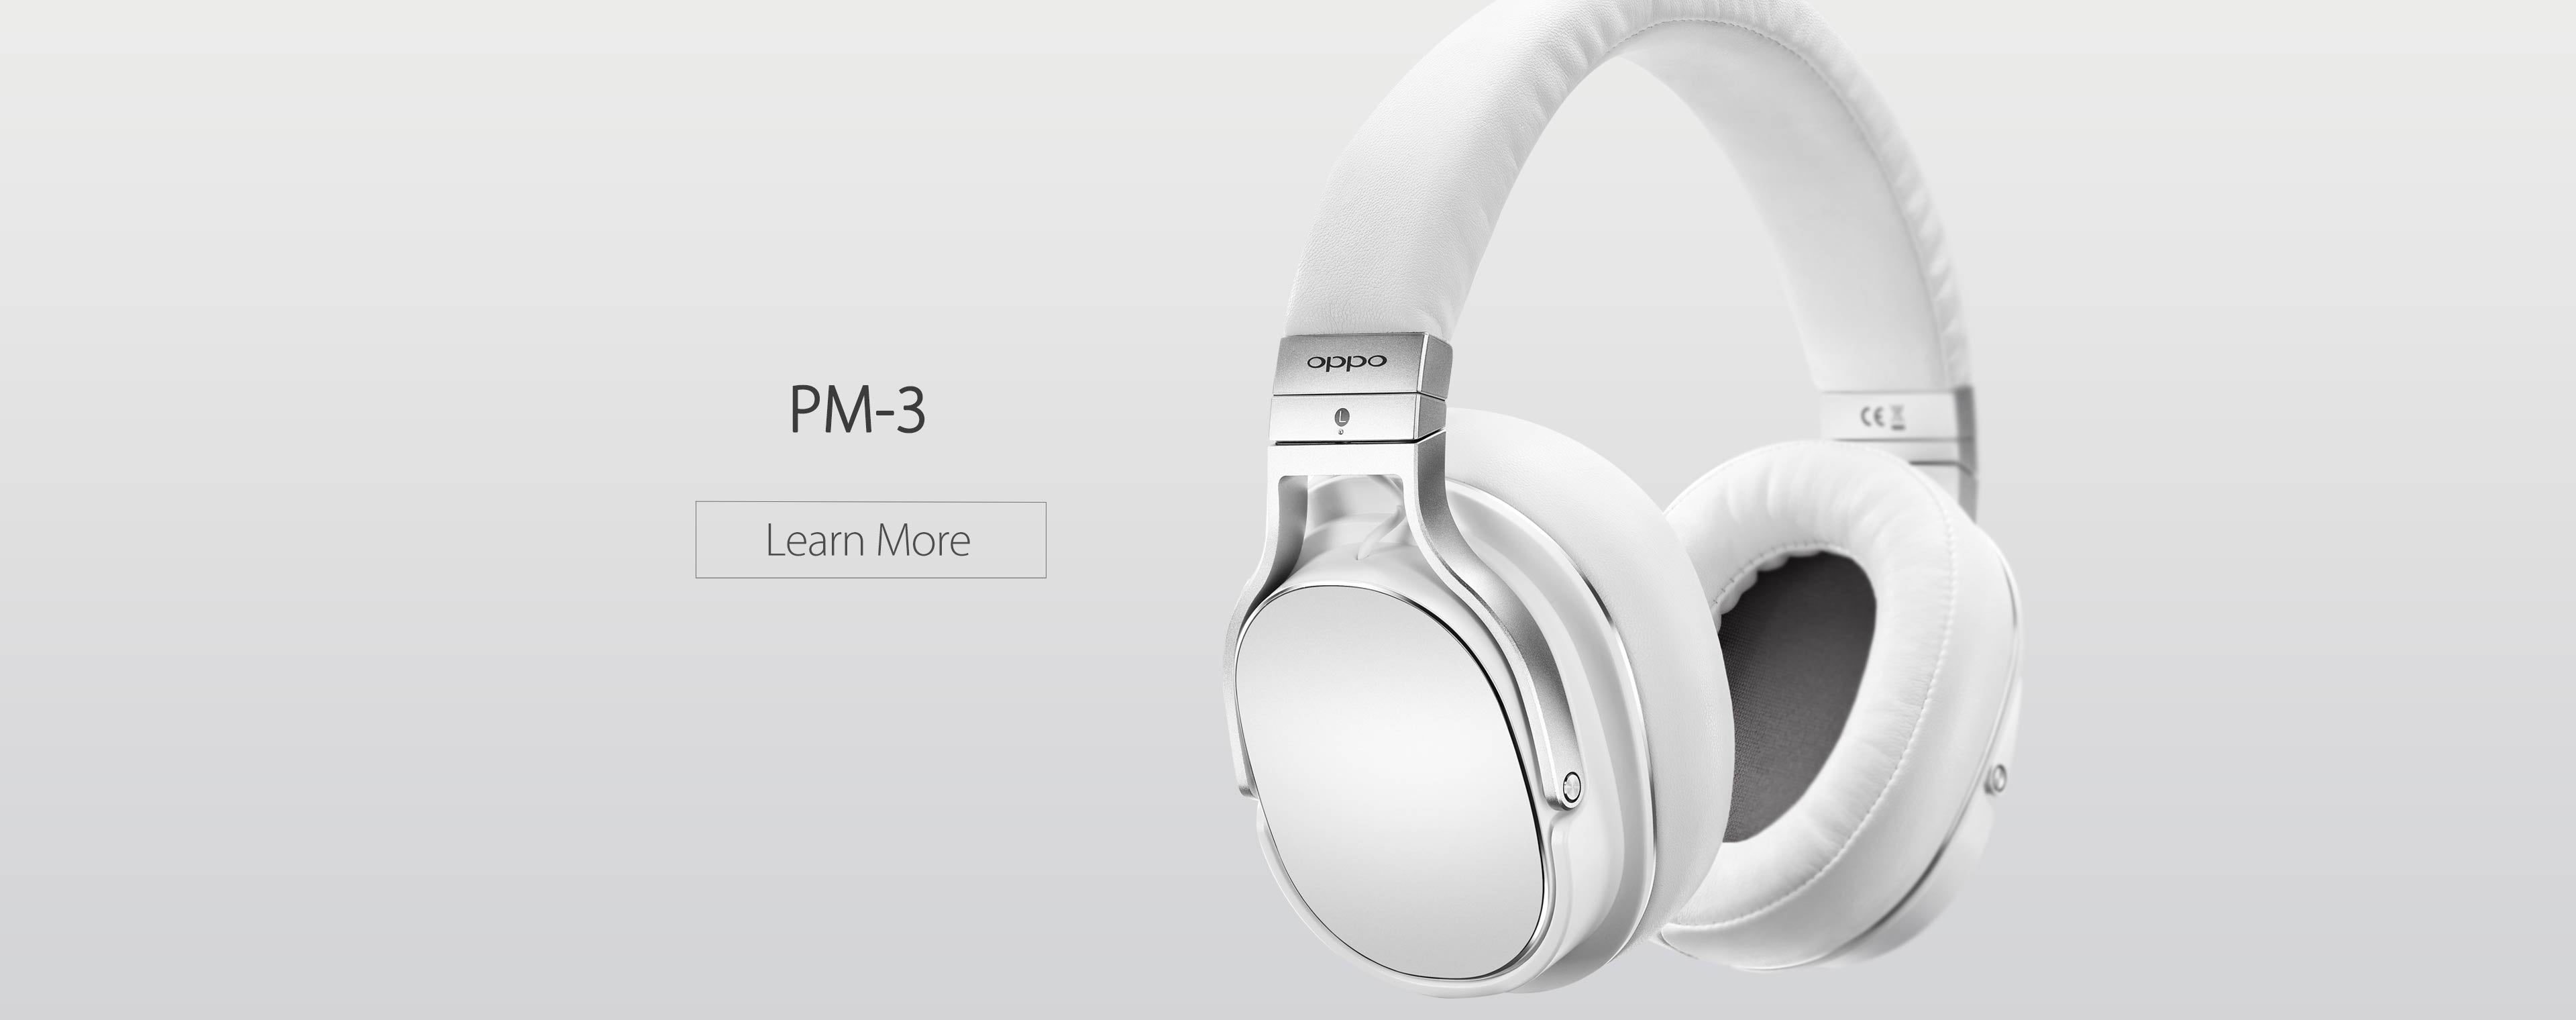 OPPO Digital Australia PM-3 Planar Magnetic Headphones White Banner